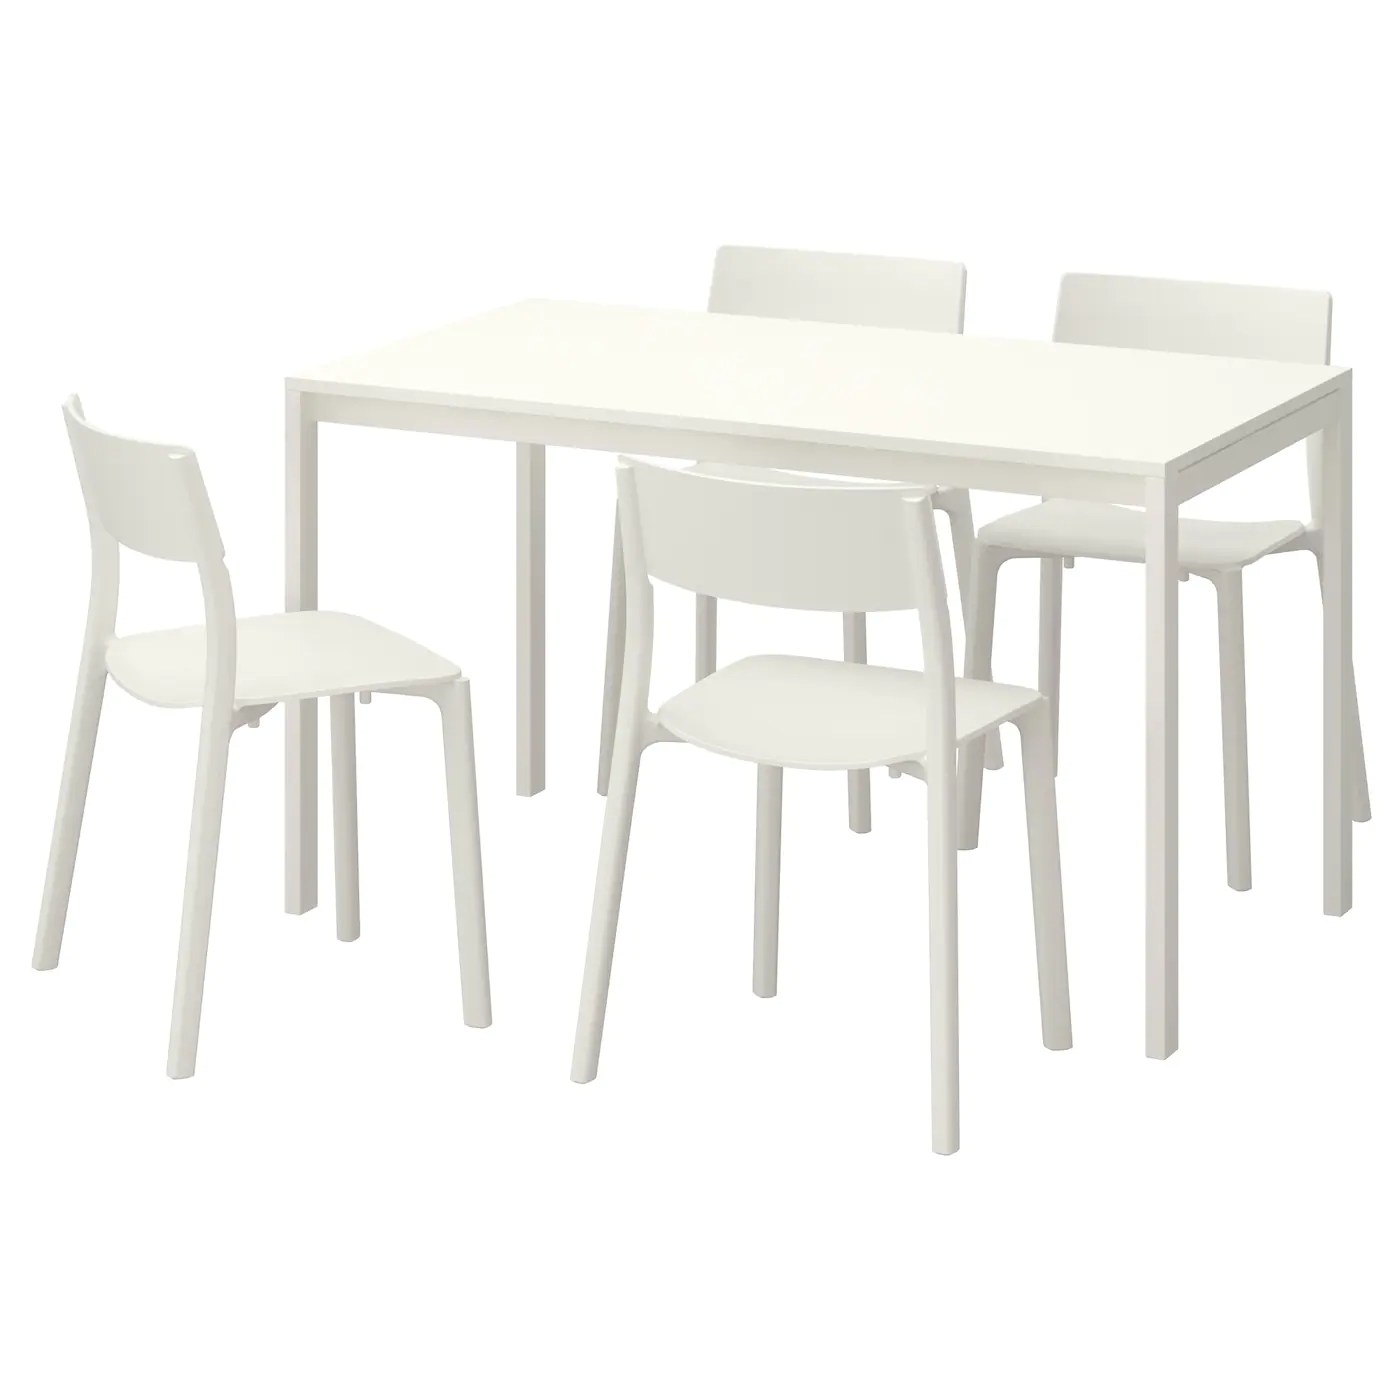 ikea usa chairs medical shower melltorp janinge table and 4 white 125 cm